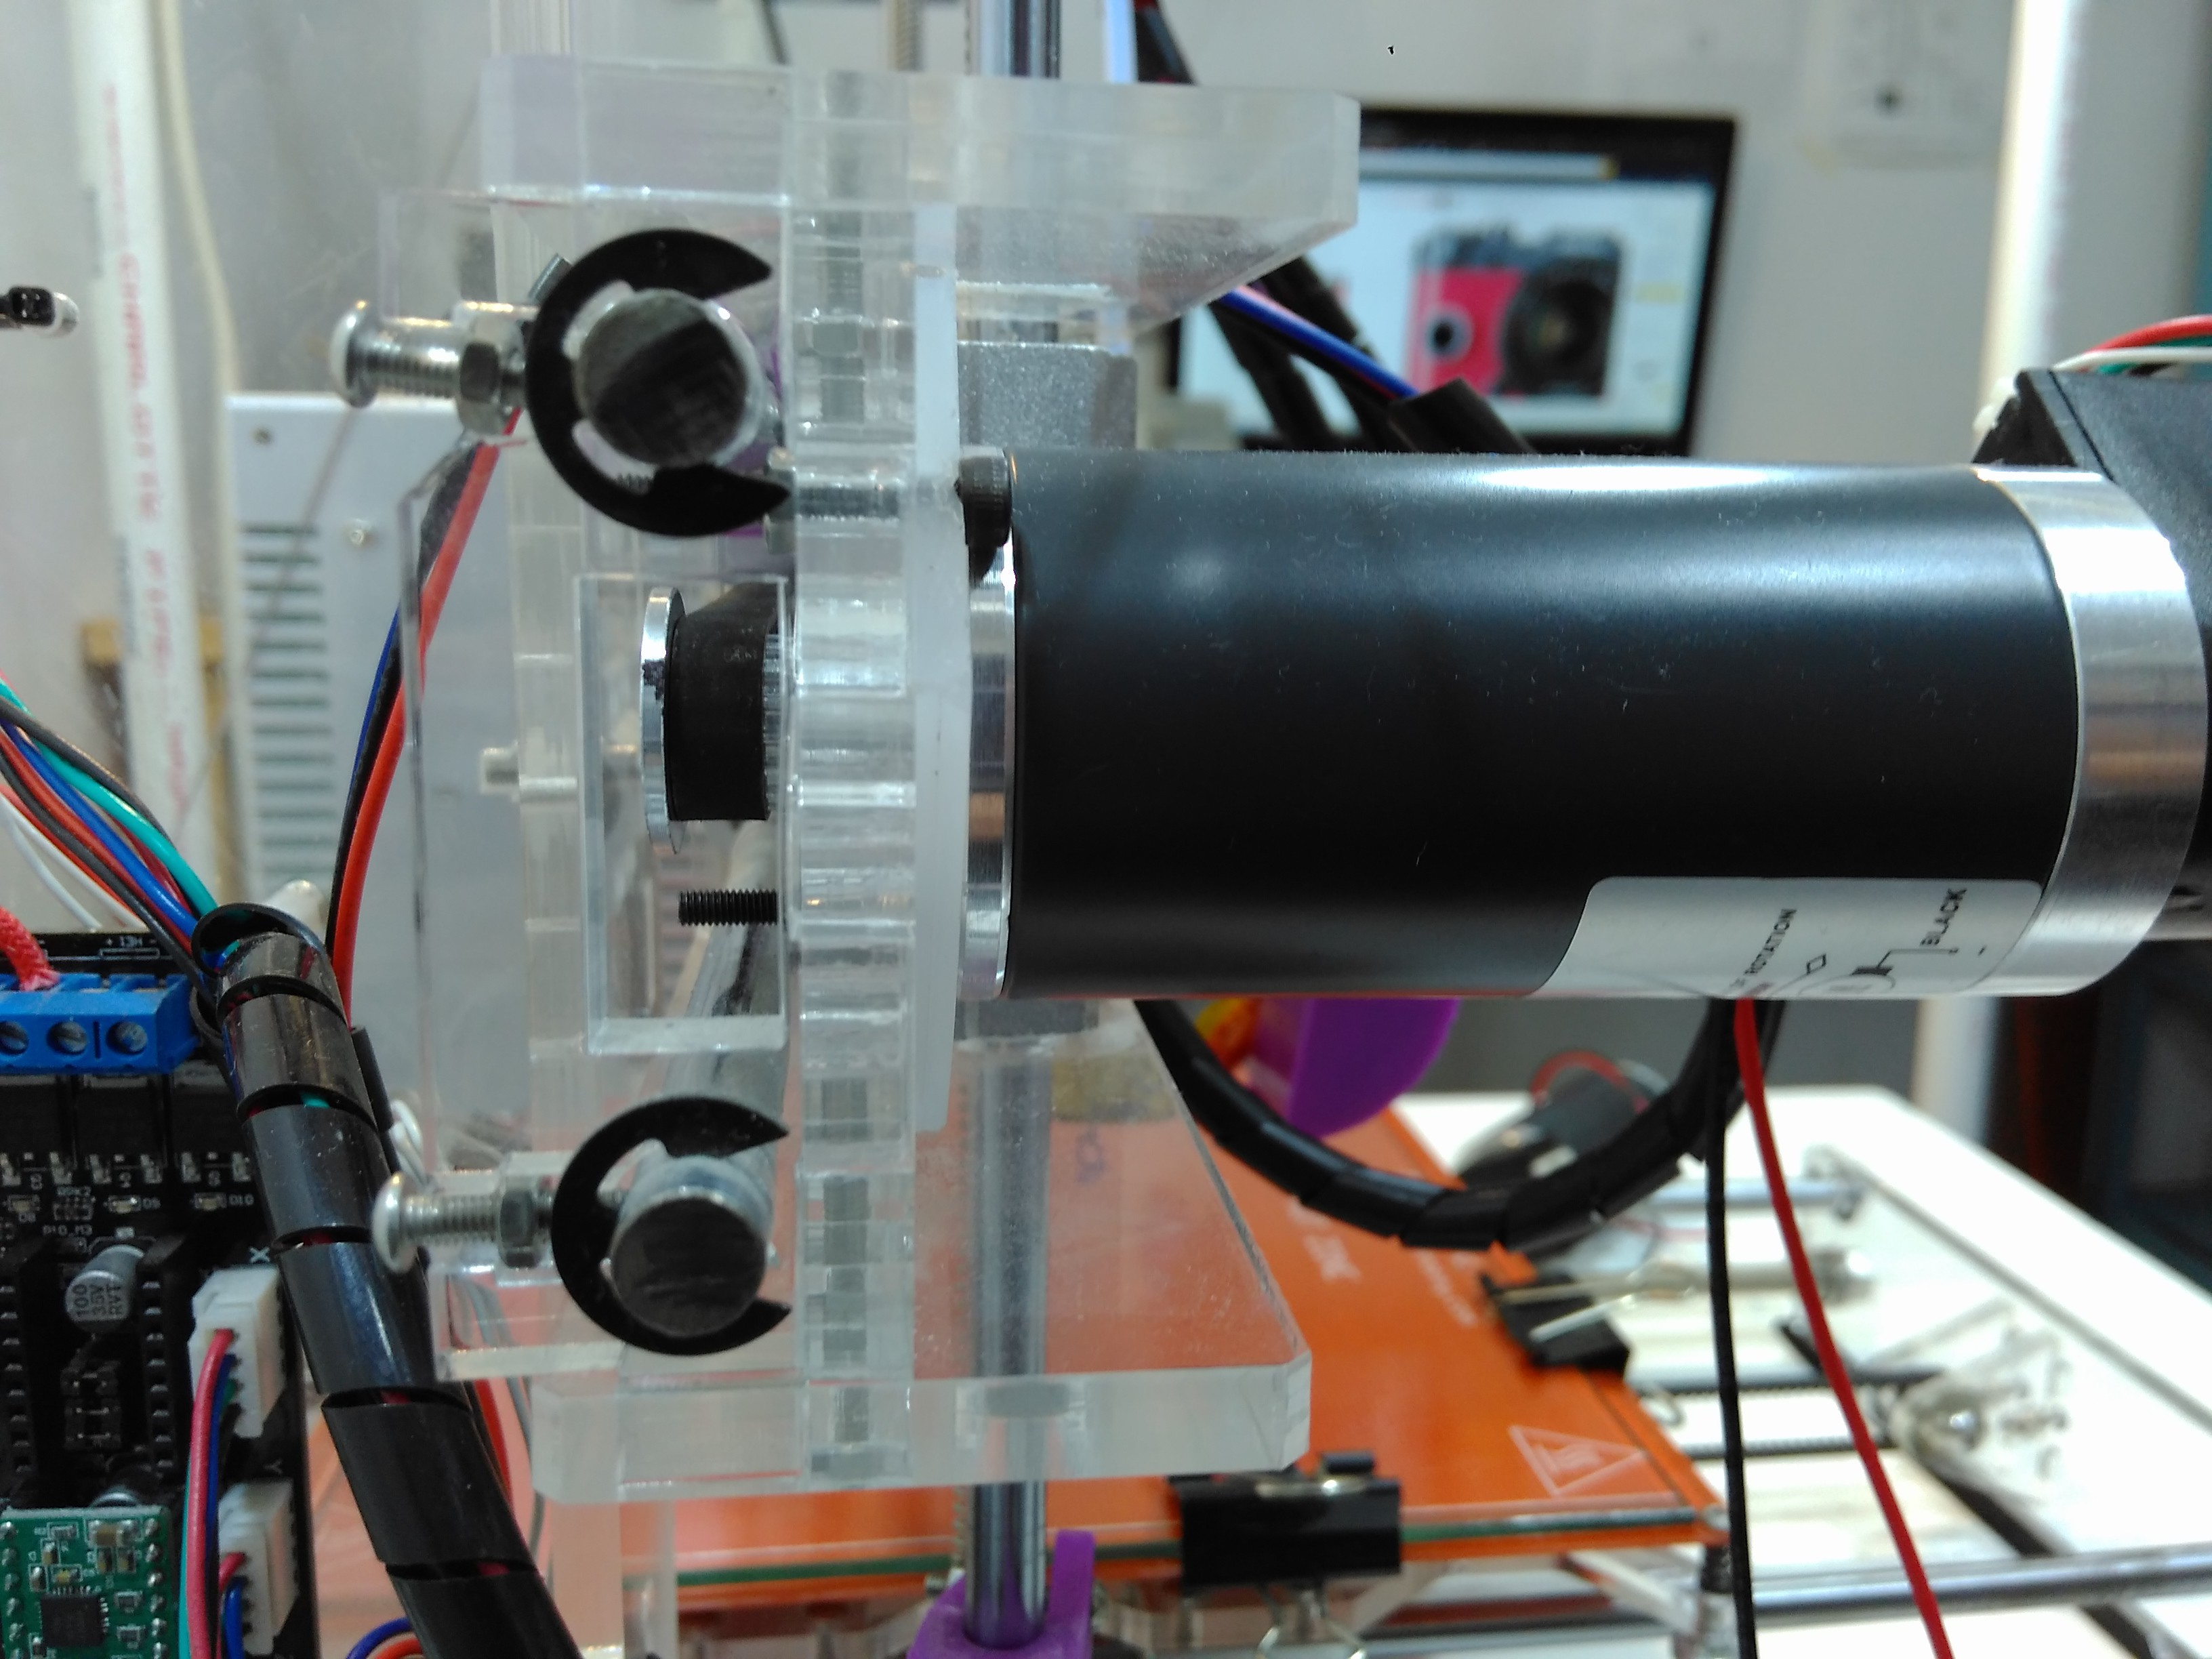 Tarocco Motor Control Cypress I Wanted To Show The Performance Of 30w Motors Got So Made A Nema17 Adapter From Piece Acrilyc And Replaced X Axis Stepper With My